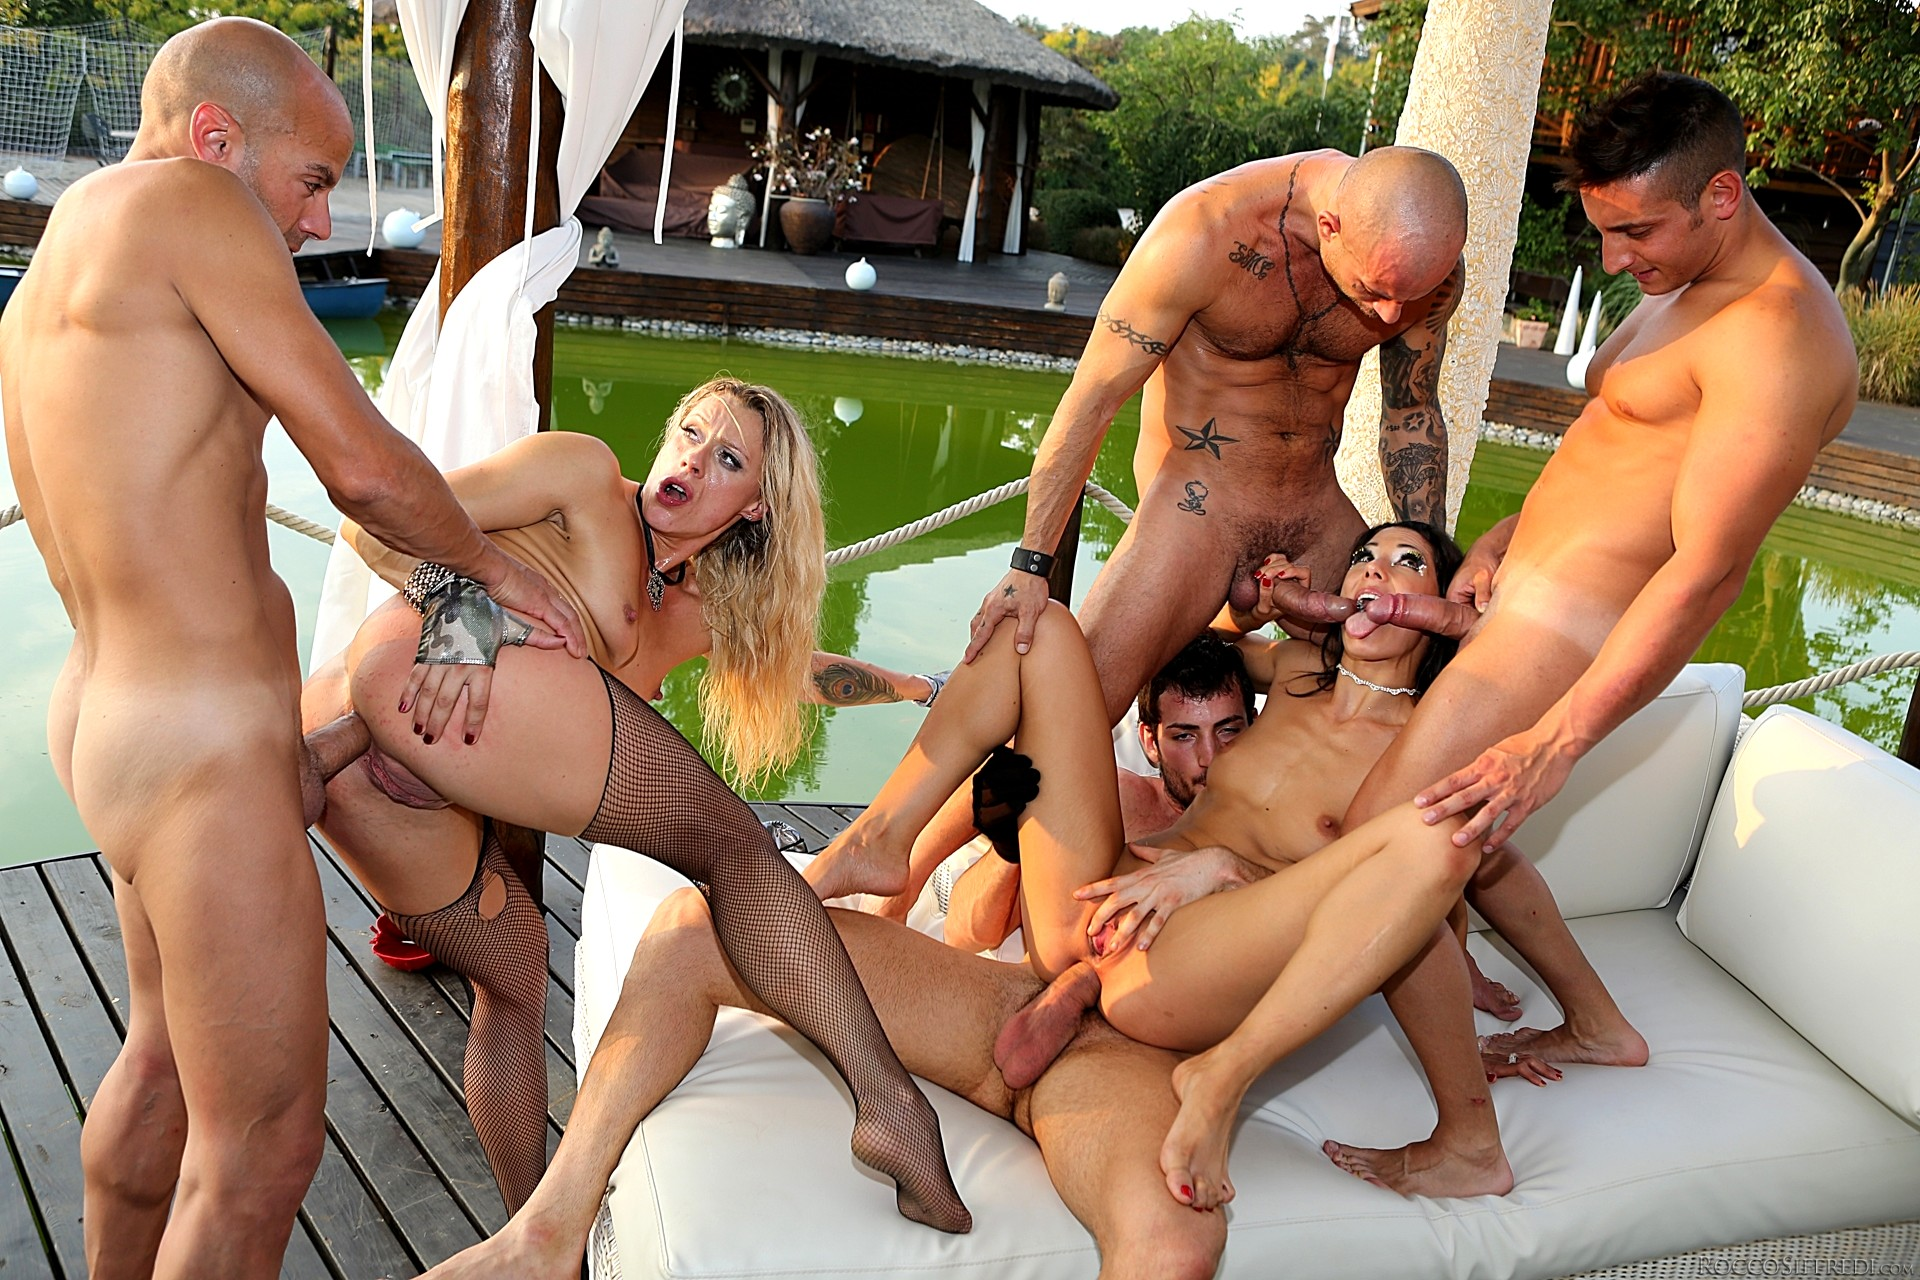 Group xxx sex hard, naked vanessa hudgenson